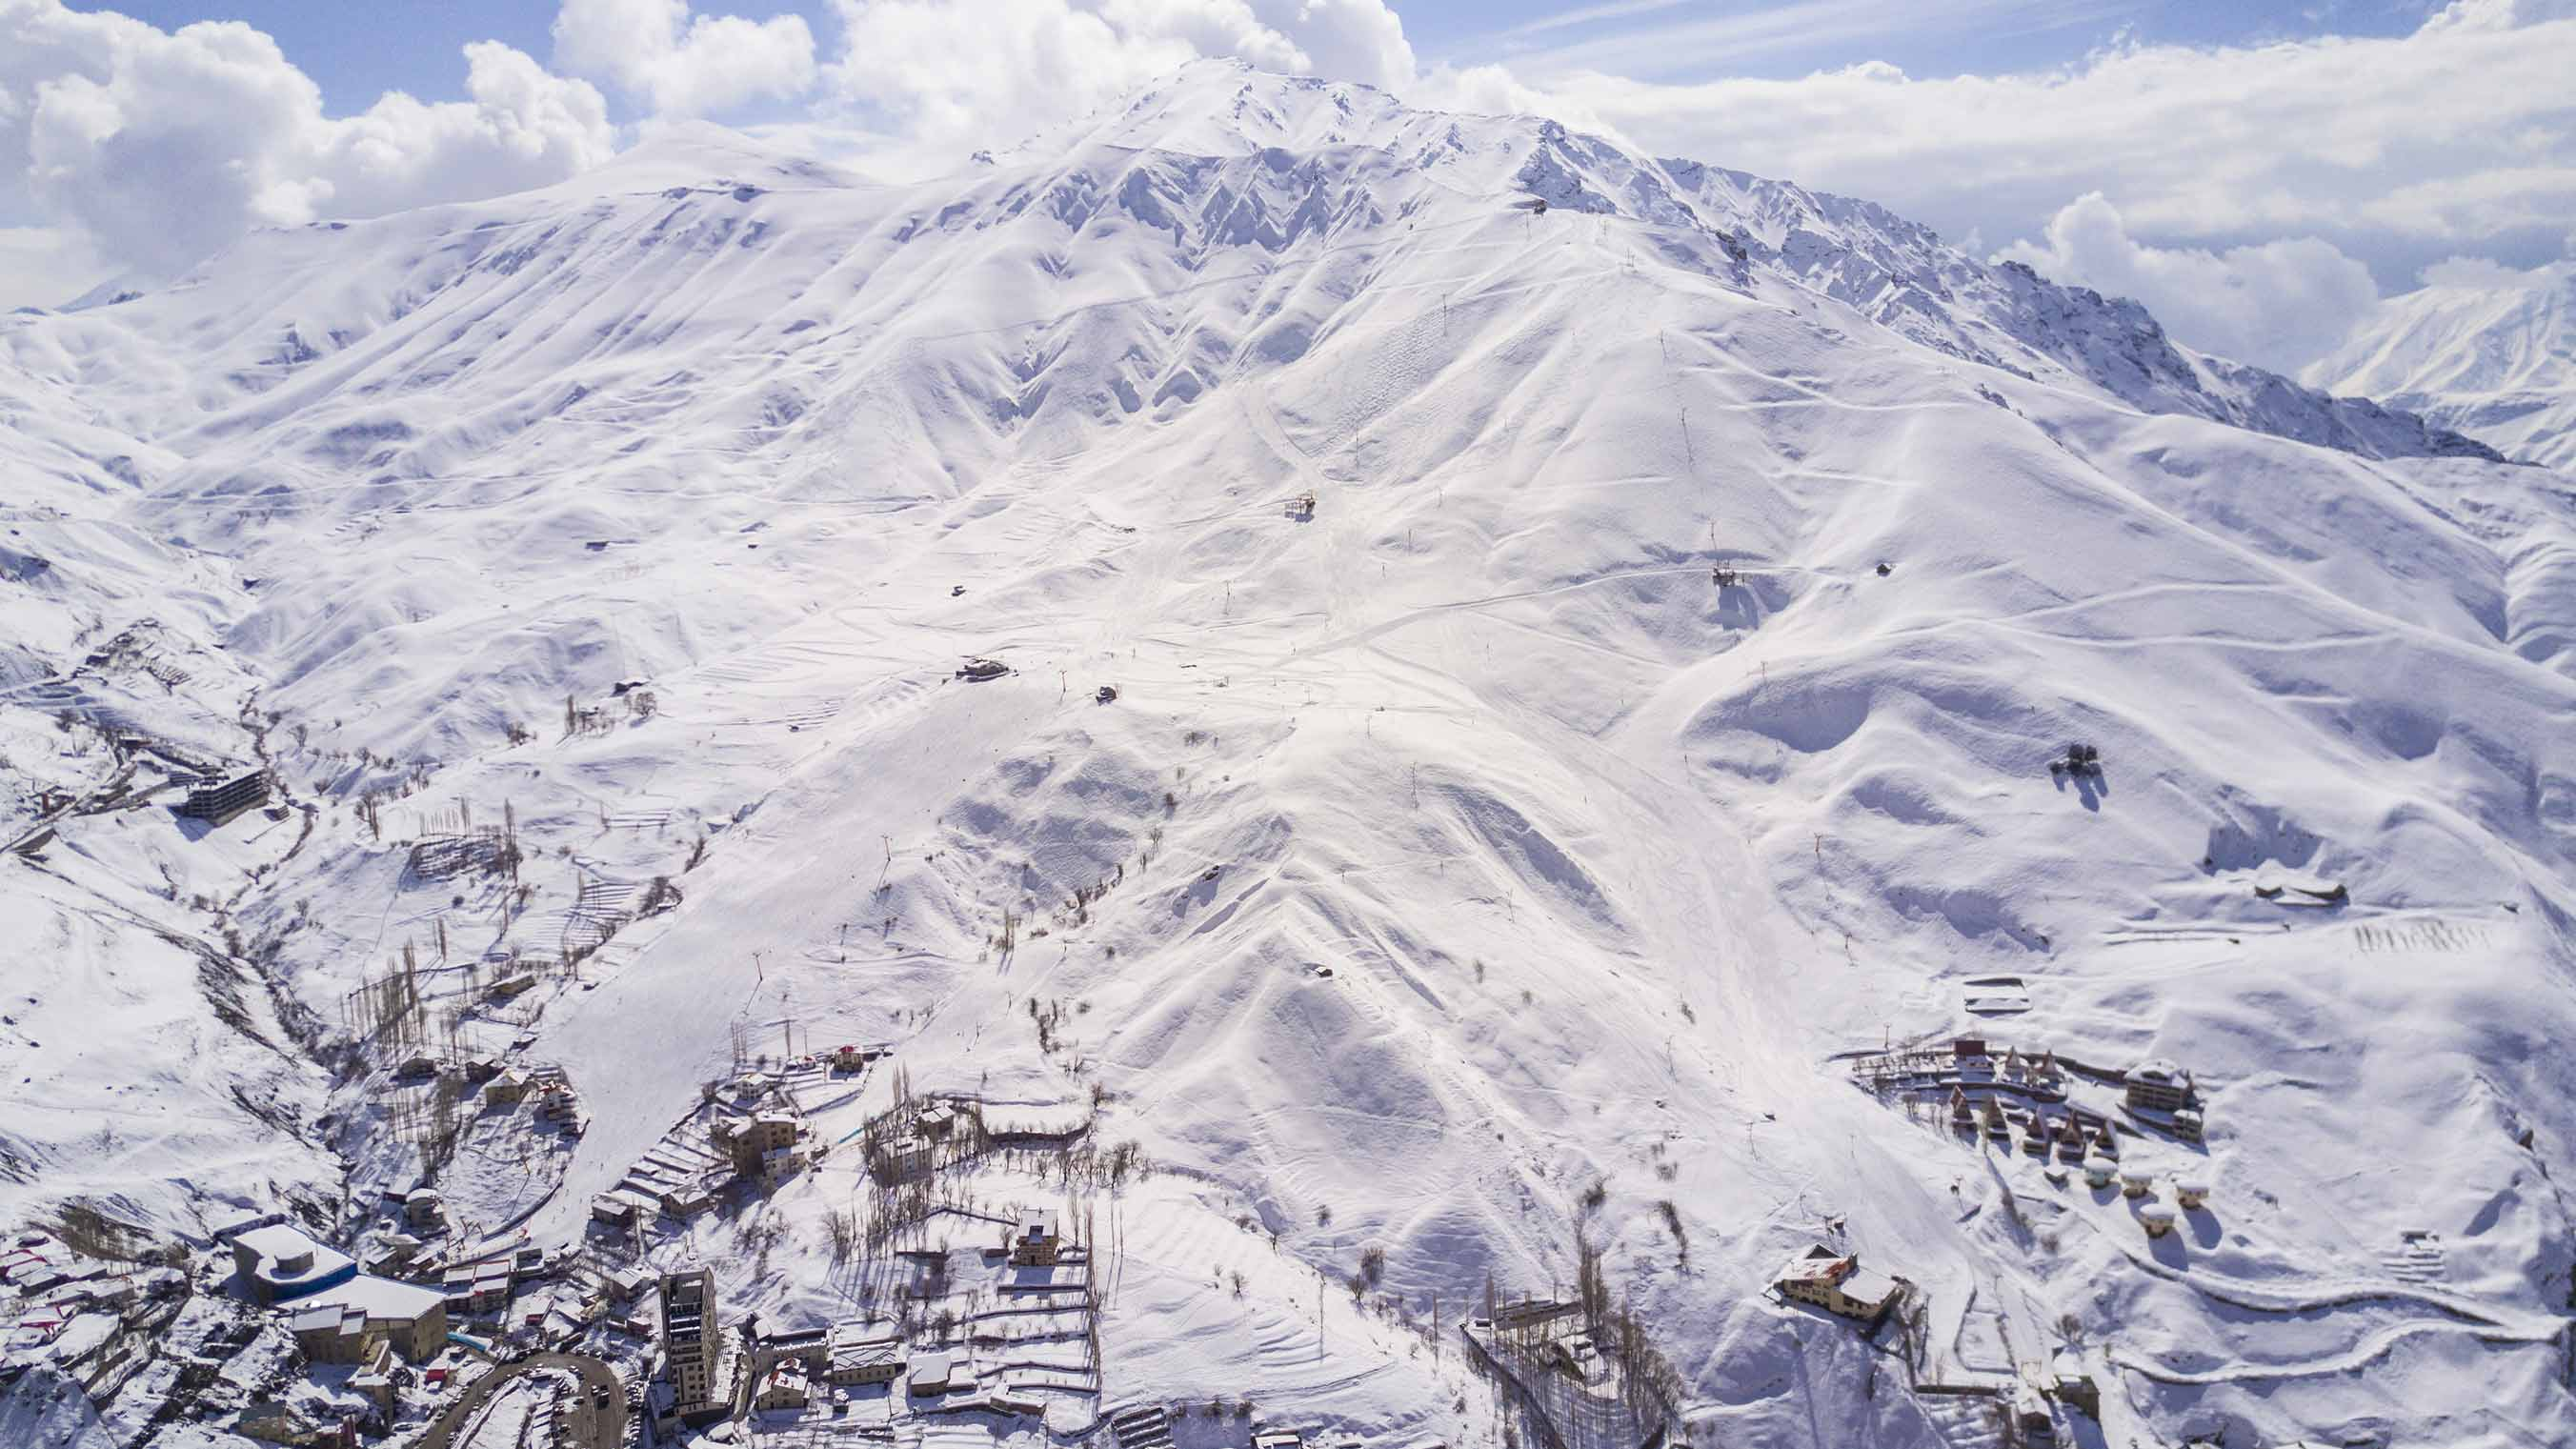 shemshak - ski resort in iran | ski of persia